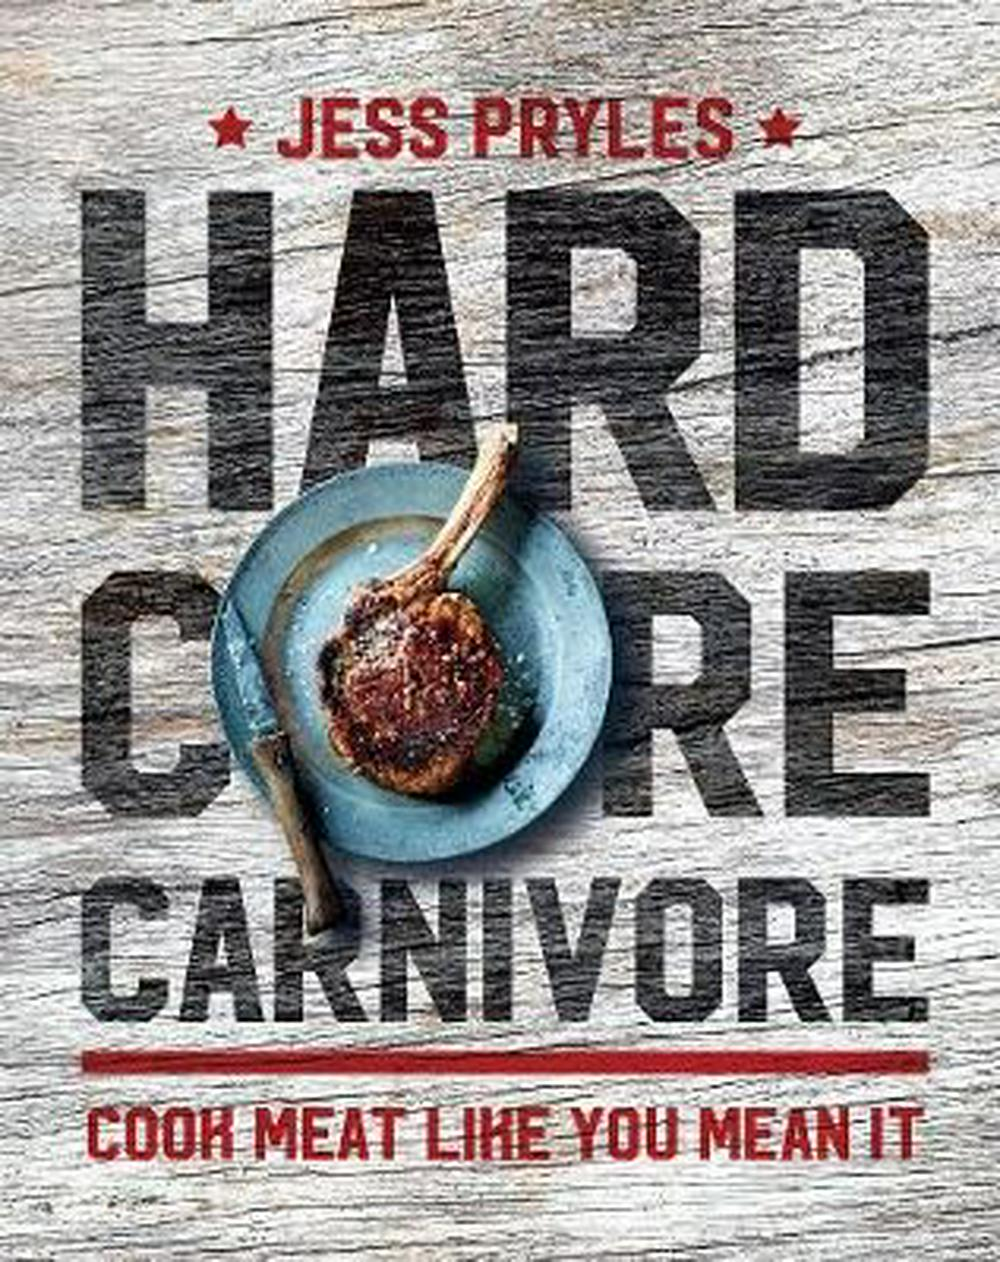 Hardcore CarnivoreCook meat like you mean it